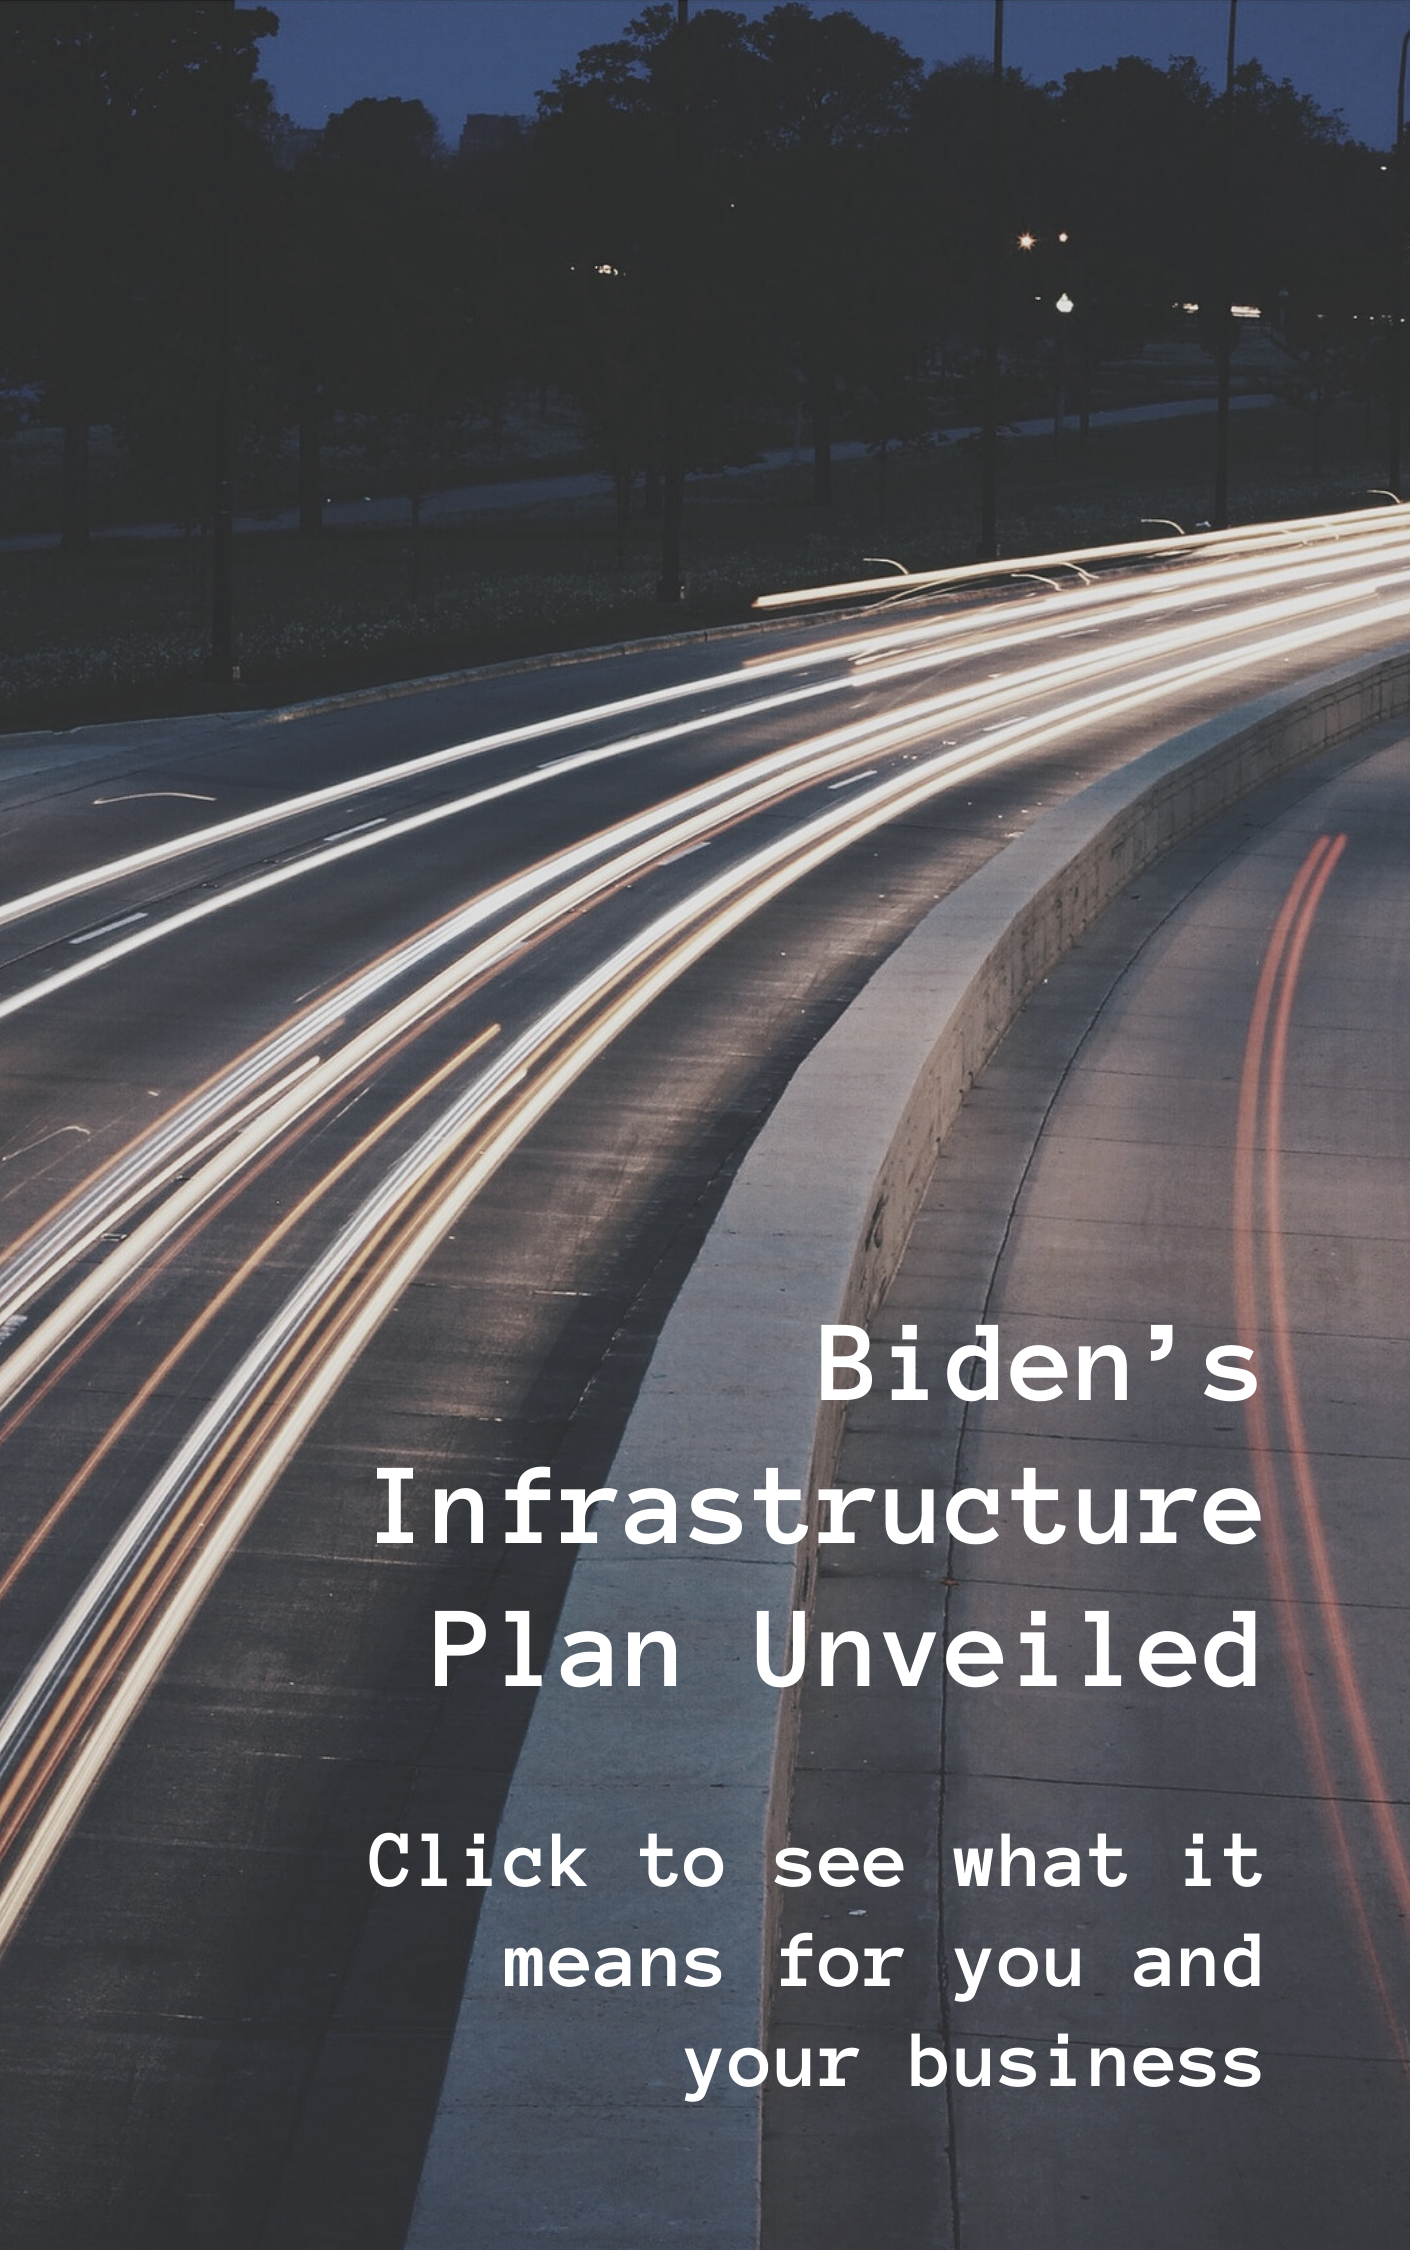 President Biden's Infrastructure Plan and You.